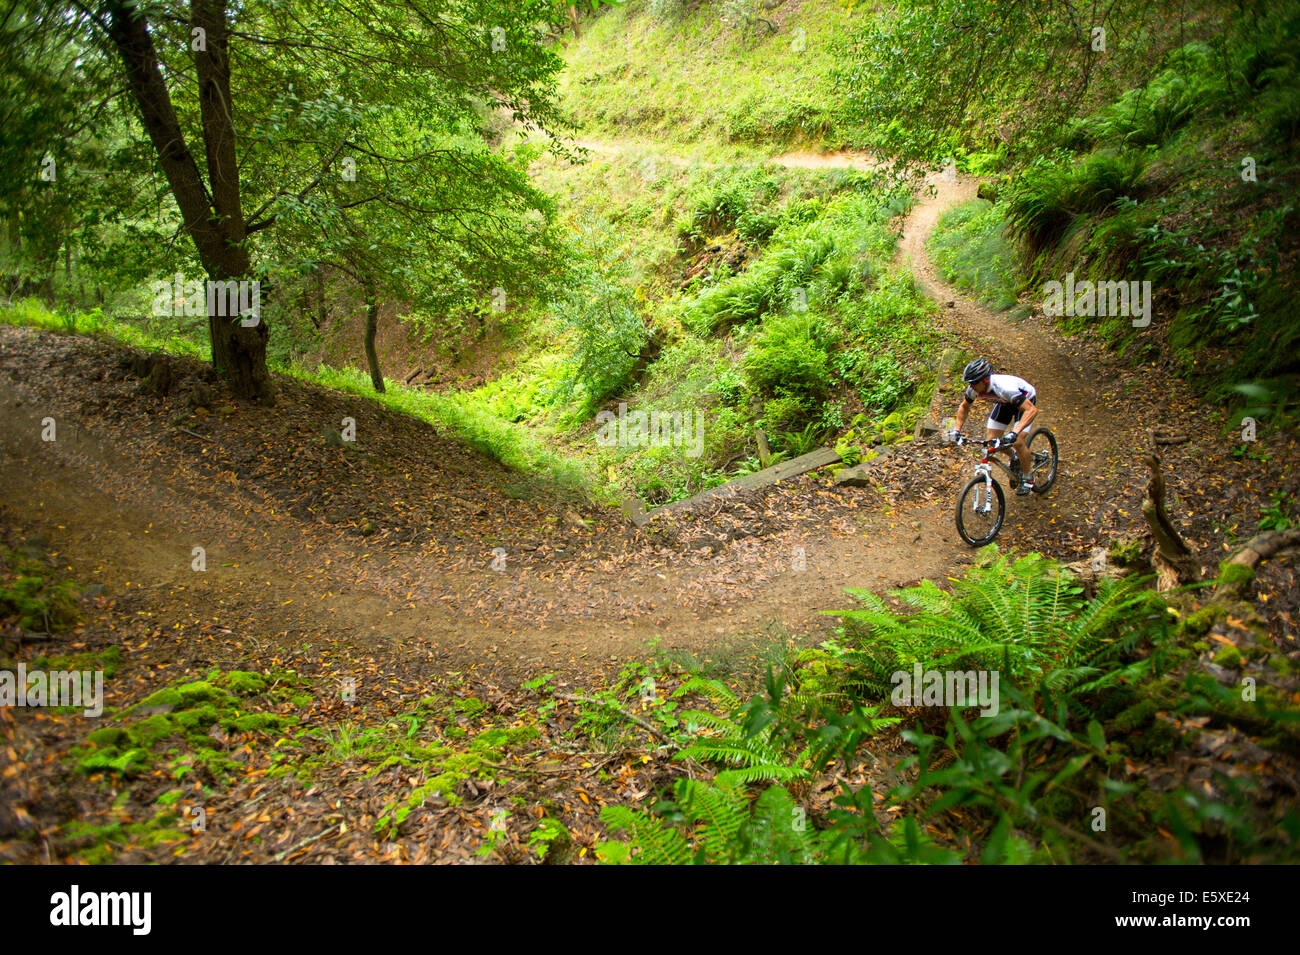 Mike mountain biking in China Camp State Park, California. - Stock Image